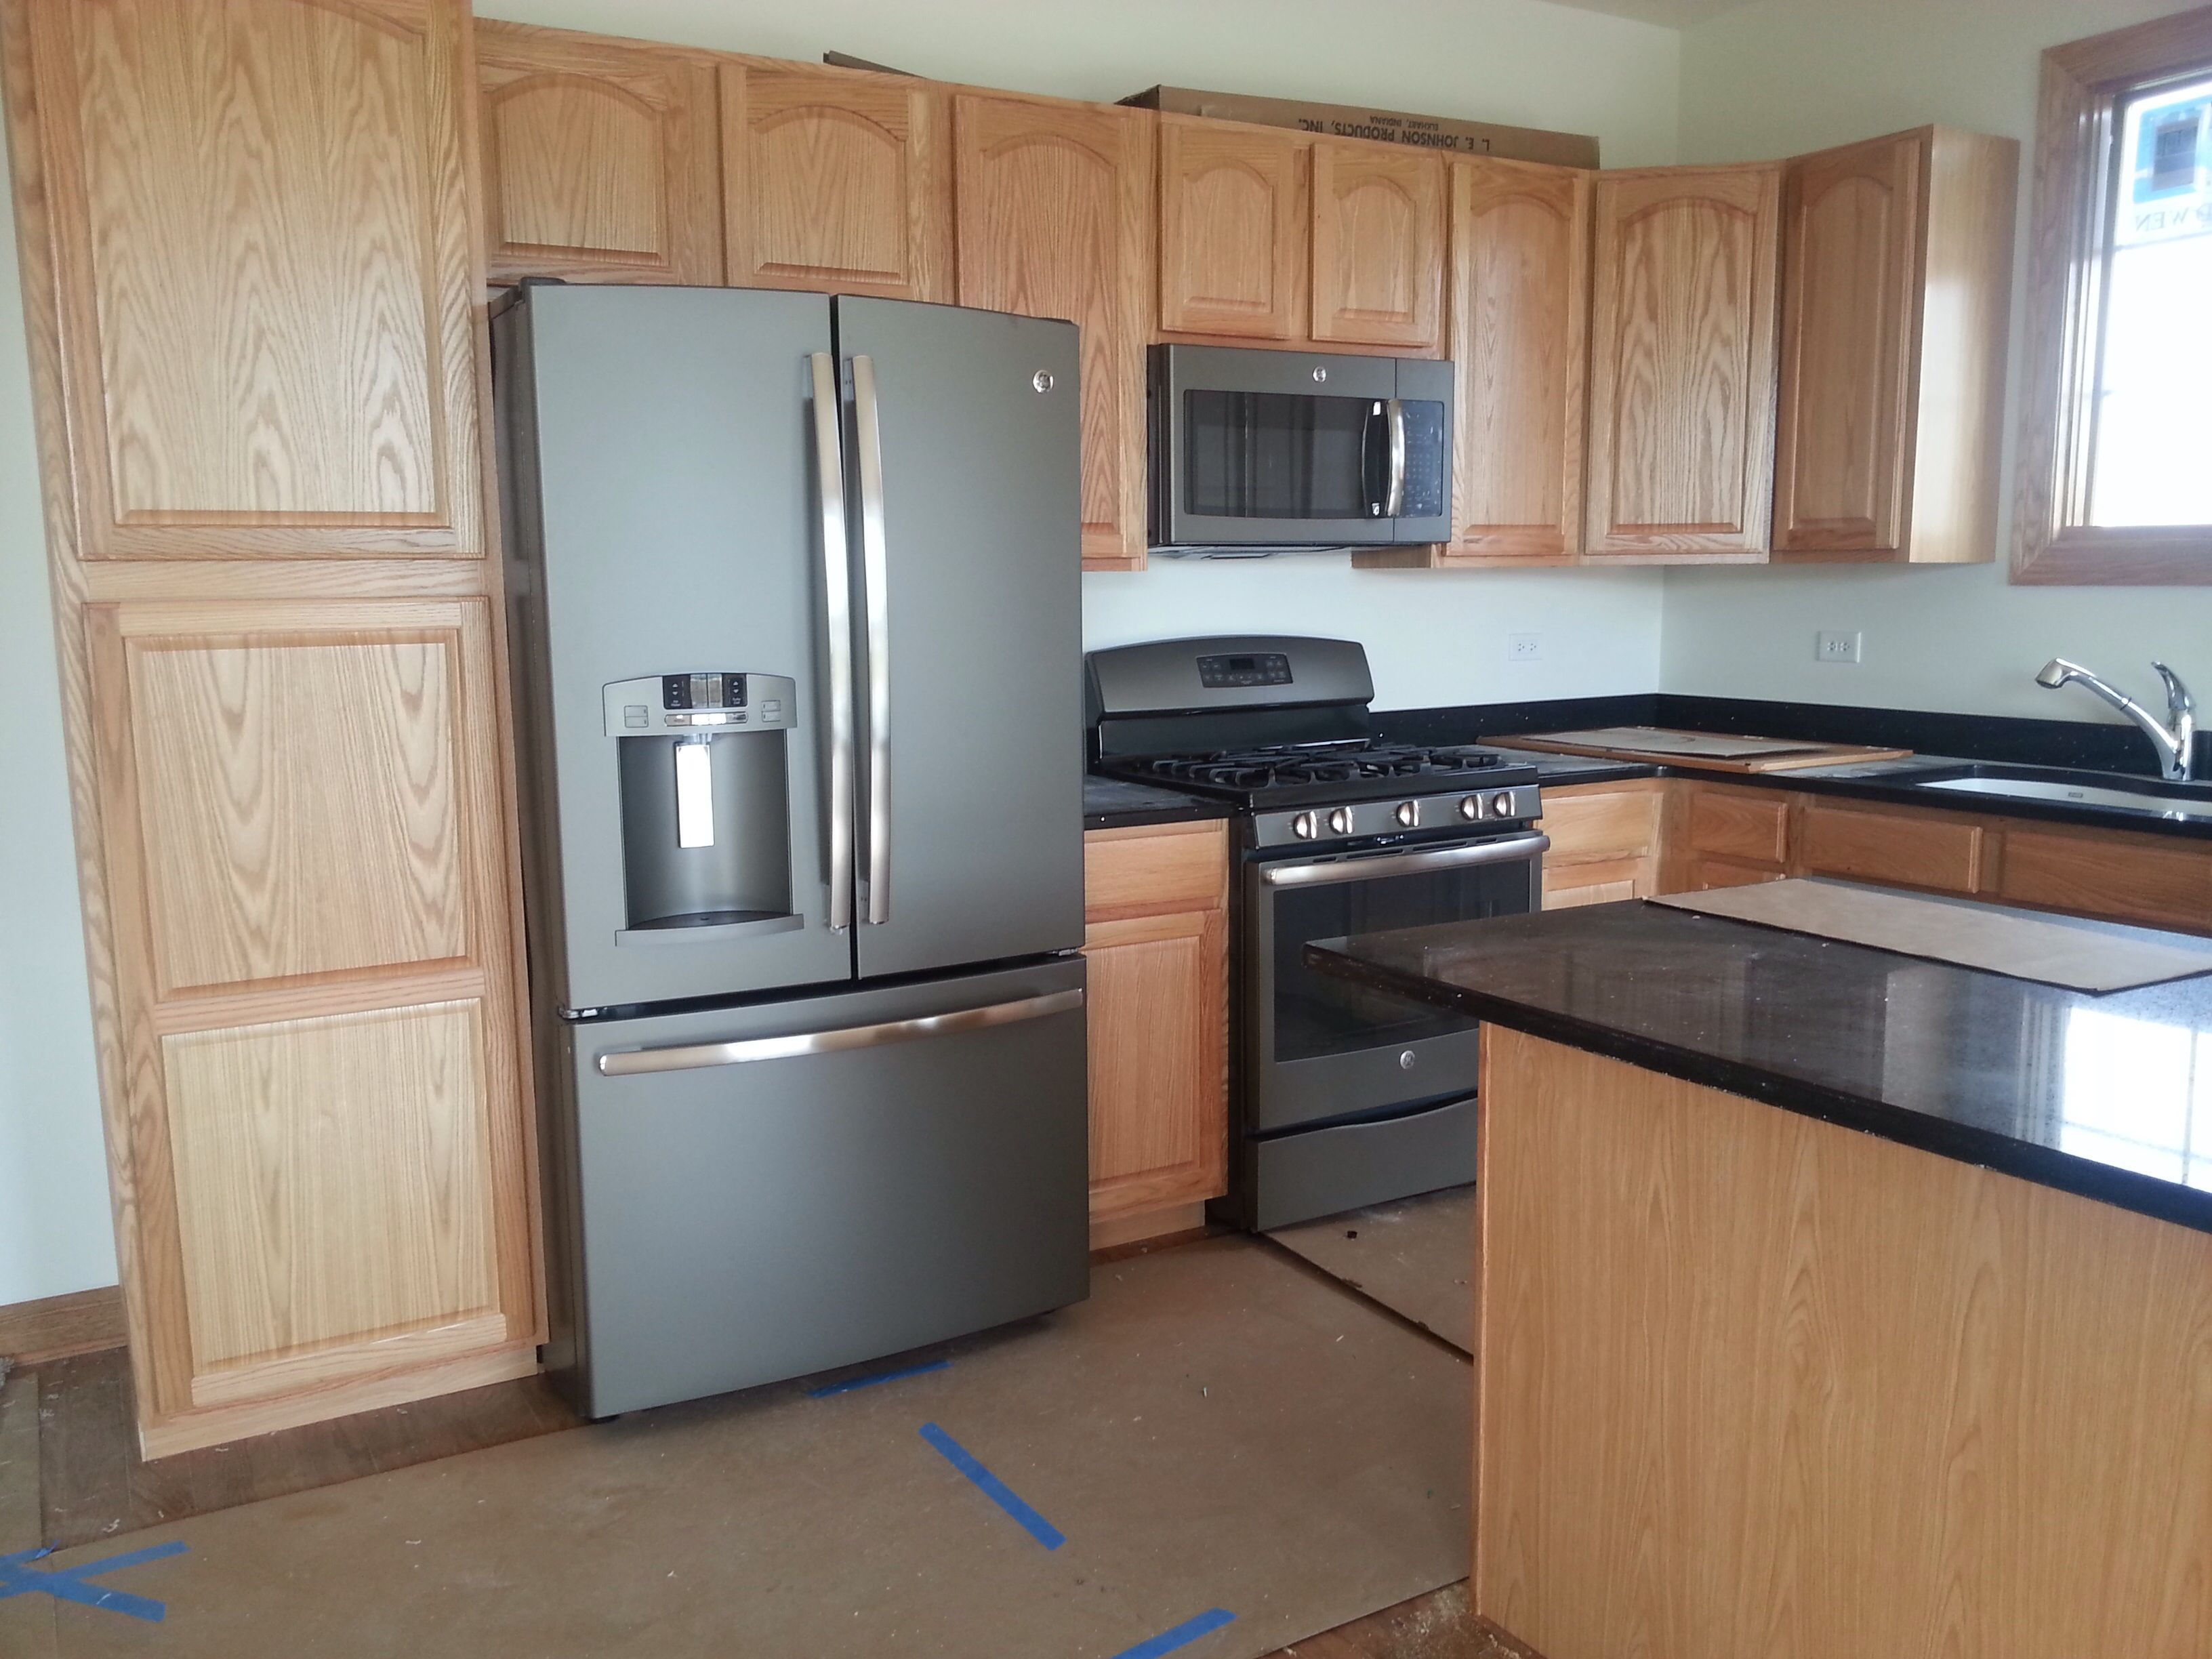 Ge Slate Appliances Whisper Creek Townhomes In Mokena Cocinas